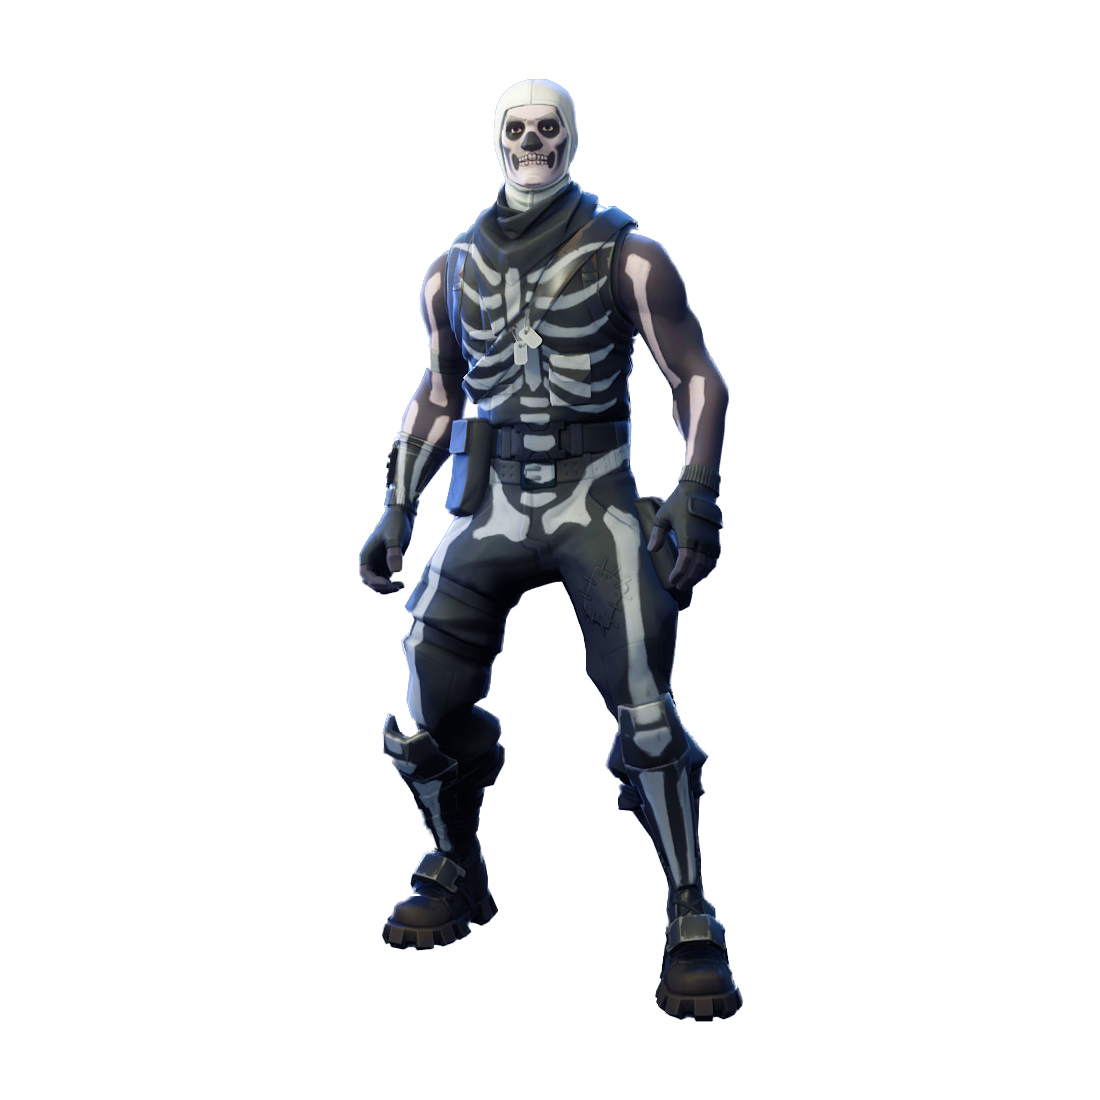 Bane transparent 2 wallpaper. Fortnite skull trooper png